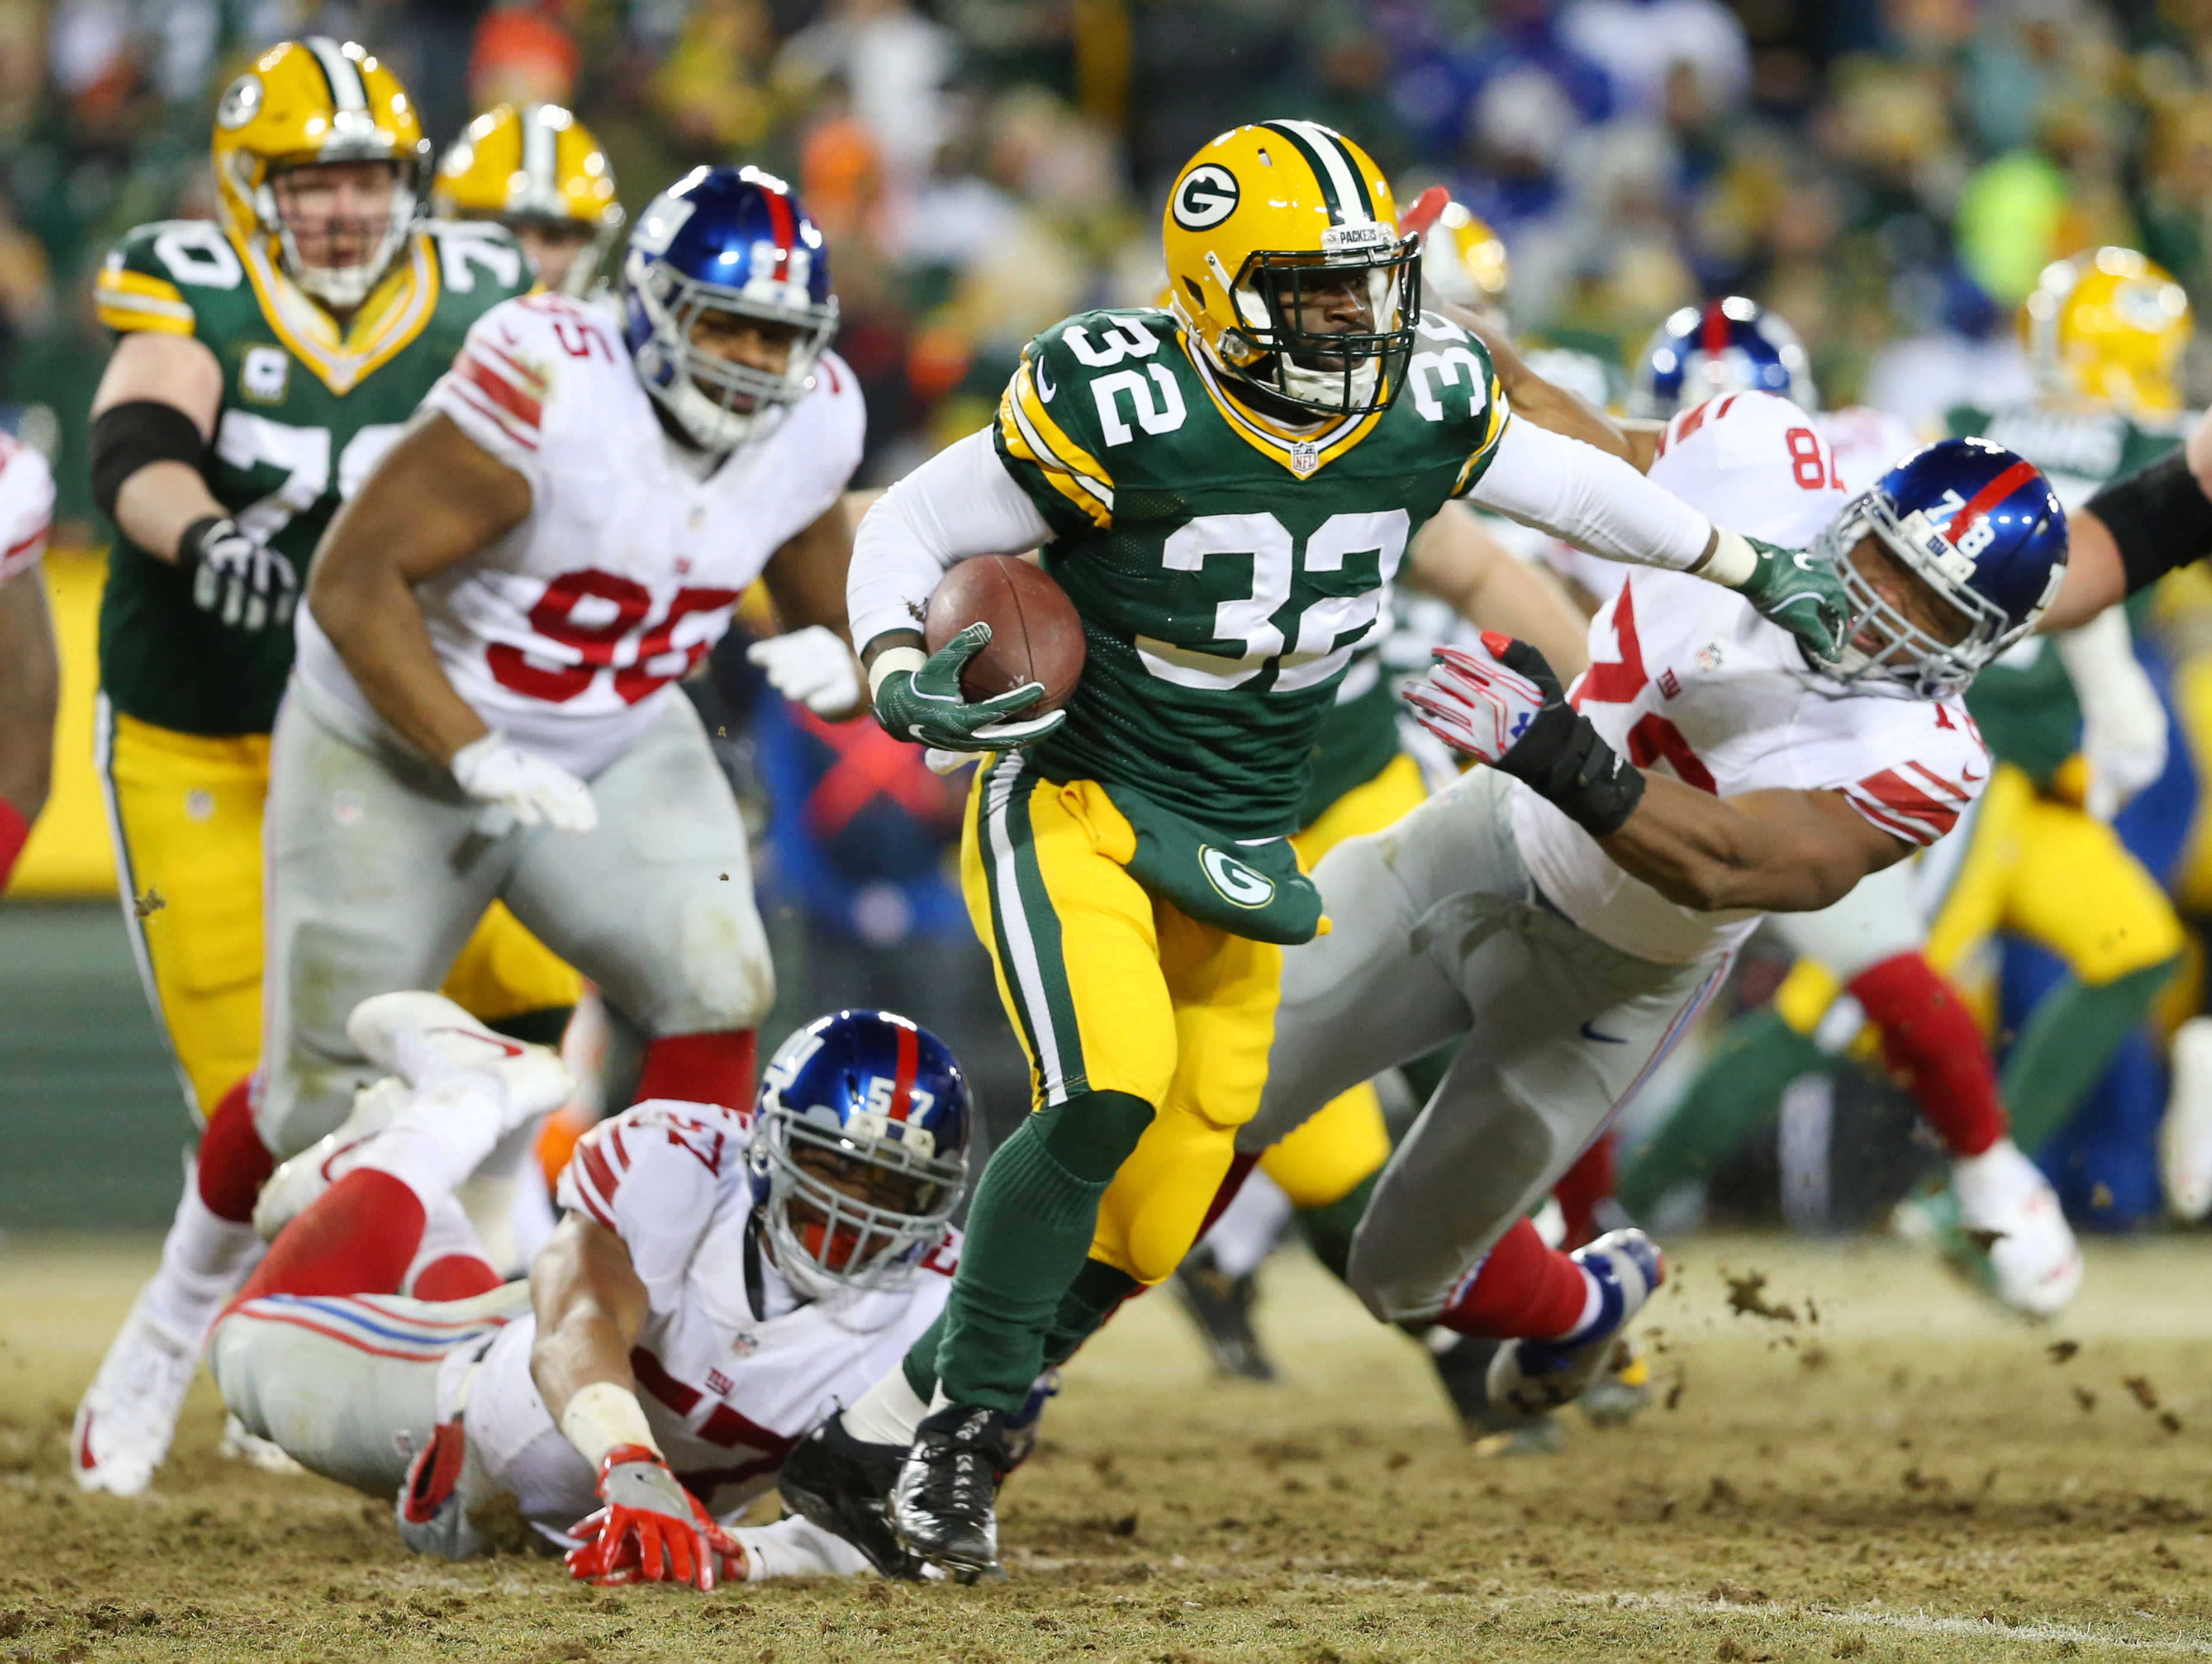 9798191-nfl-nfc-wild-card-new-york-giants-at-green-bay-packers